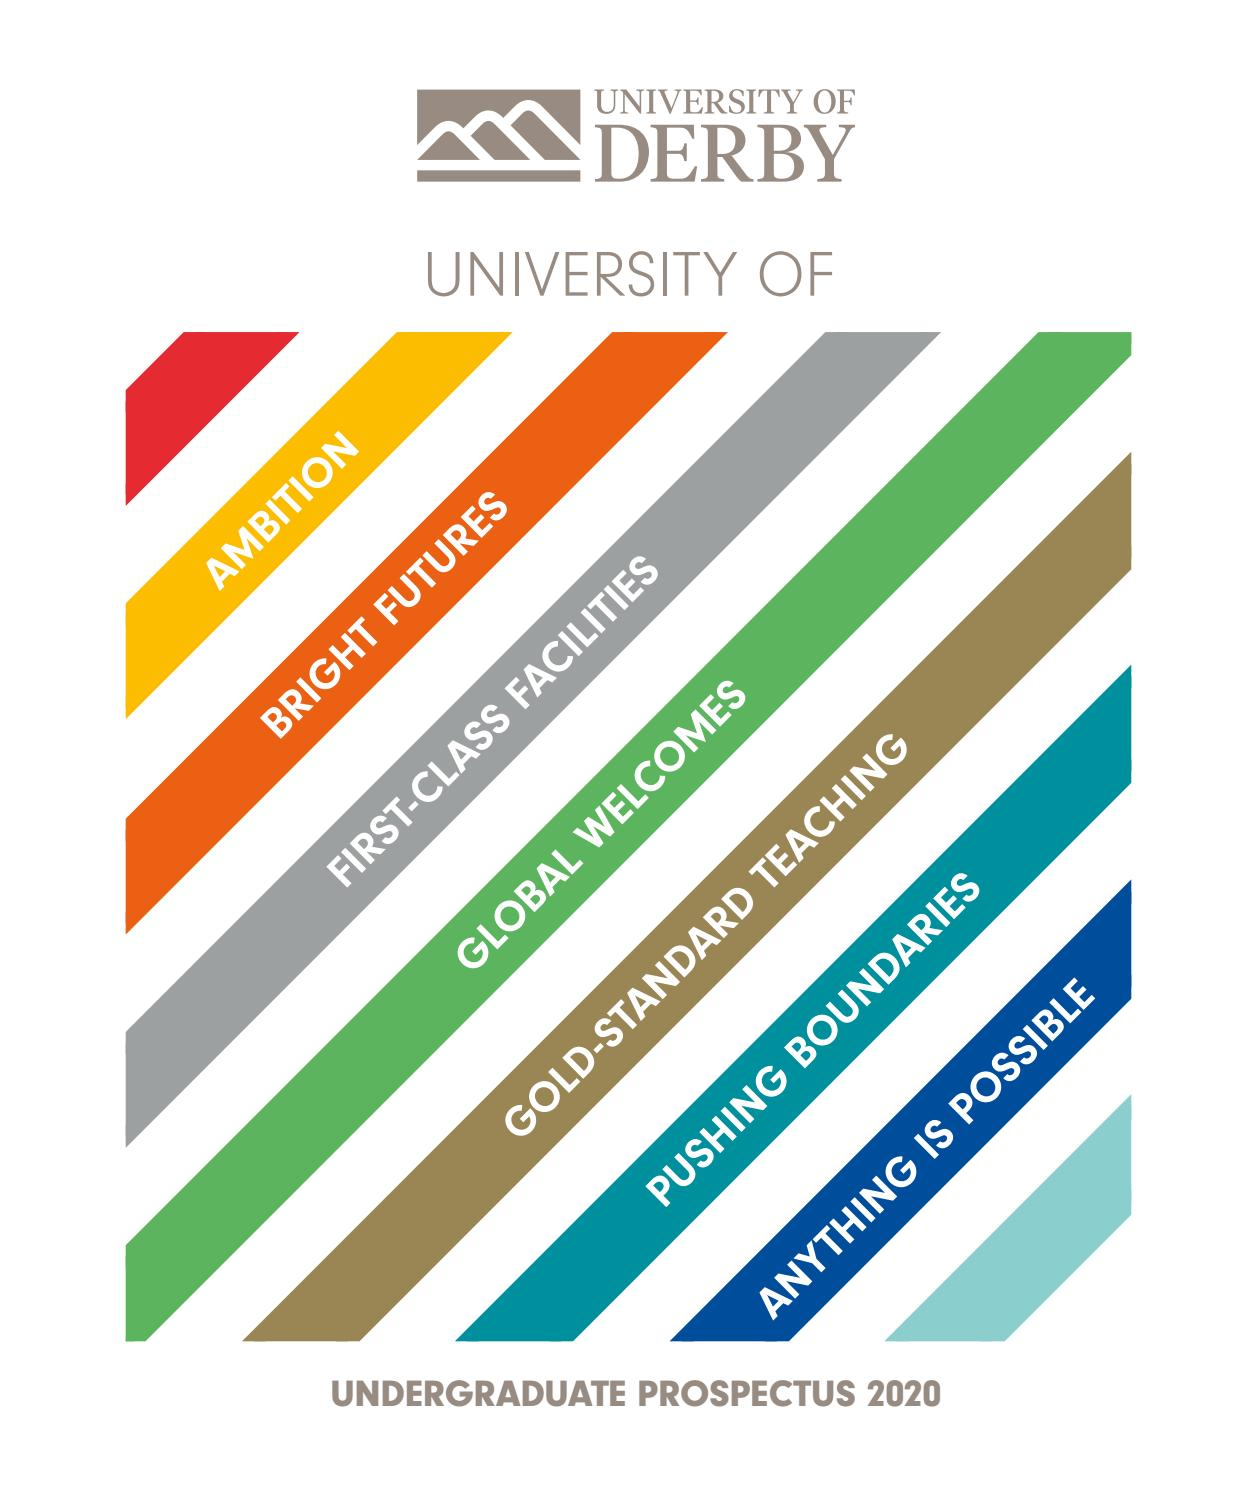 Undergraduate Prospectus 2020 by UNIVERSITY OF DERBY - issuu